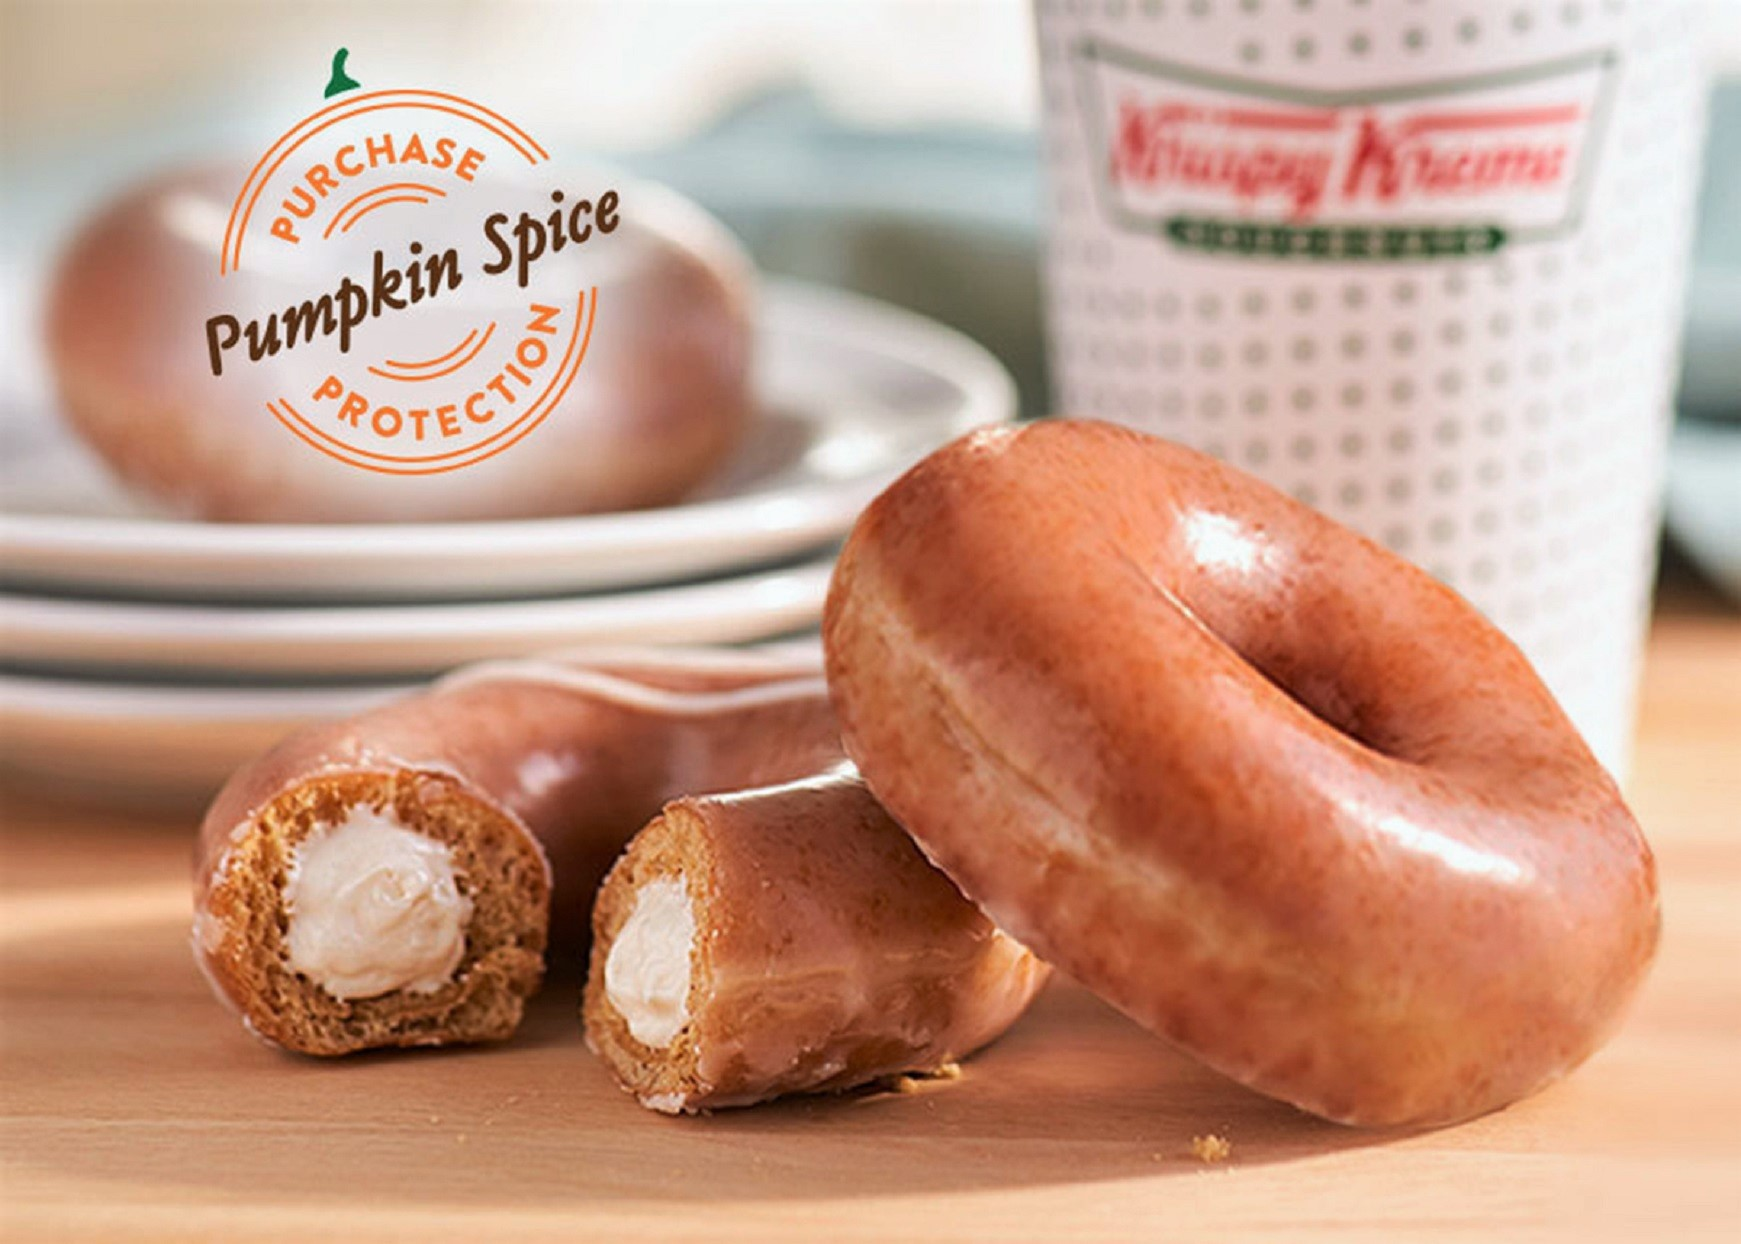 Krispy Kreme Introduces Cheesecake-Stuffed Pumpkin Spice Donuts for One Week Only